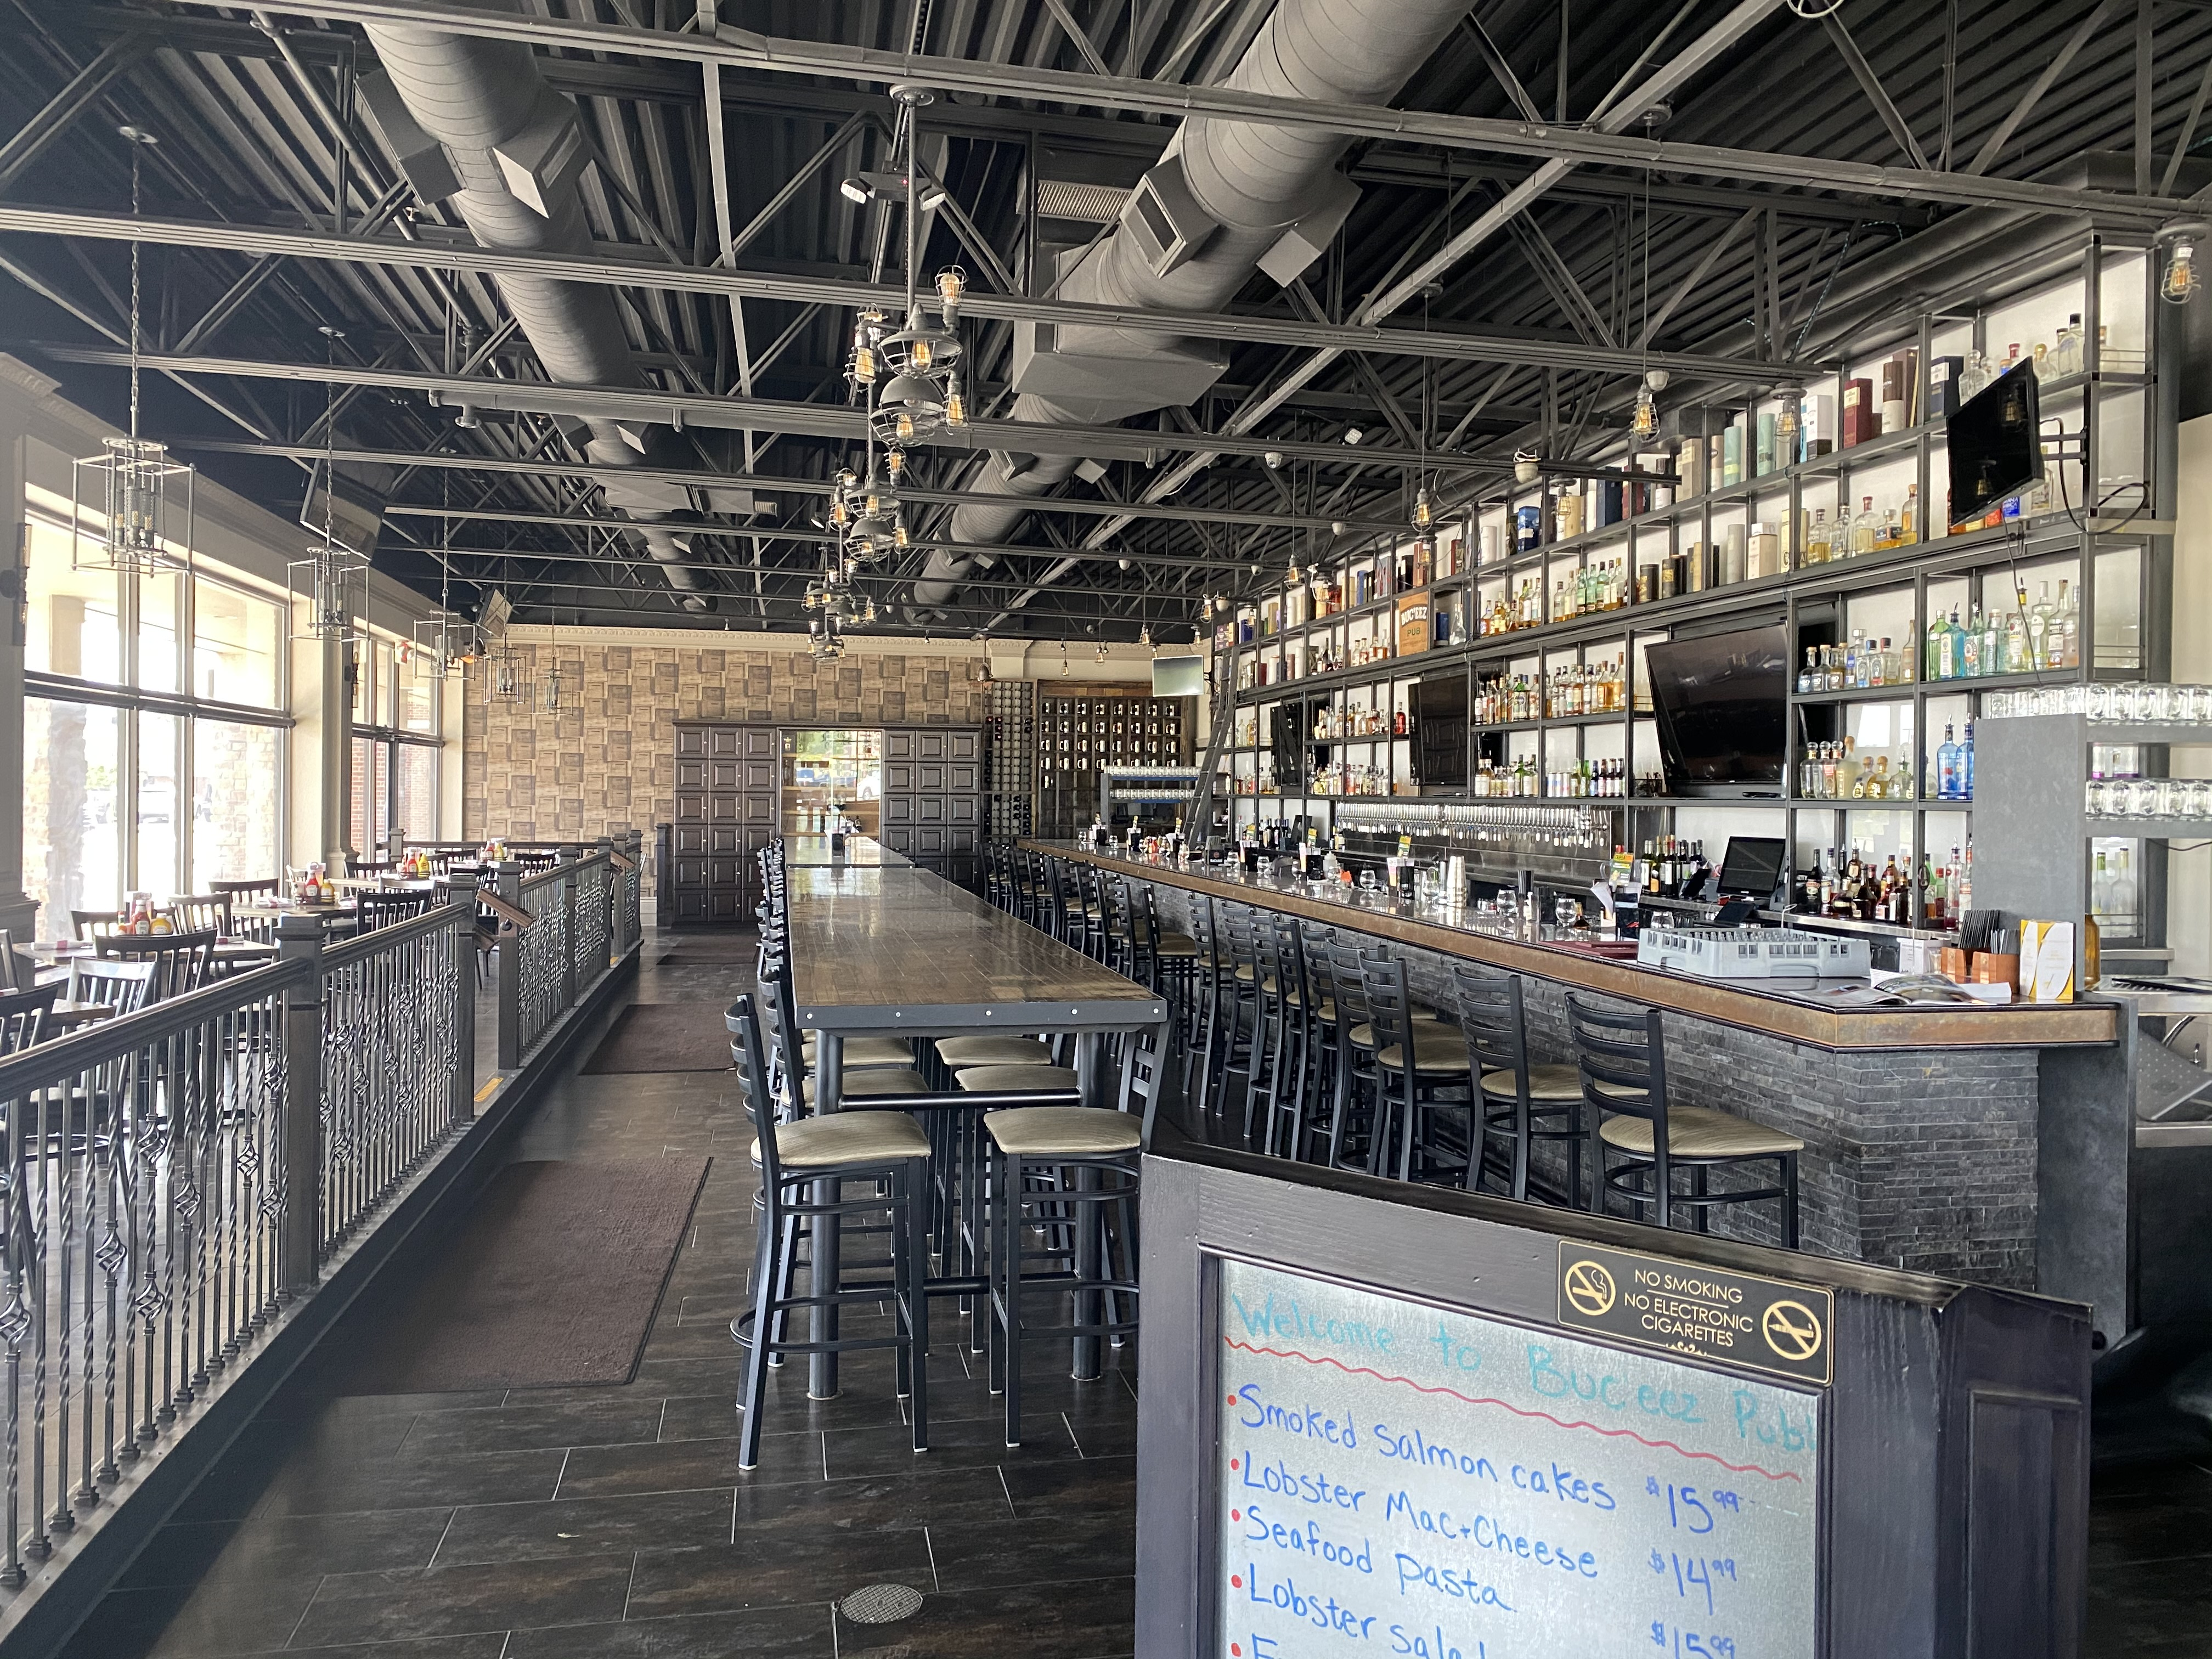 An empty bar interior with a long, stone-tiled bar and industrial ceilings with exposed ventilation.